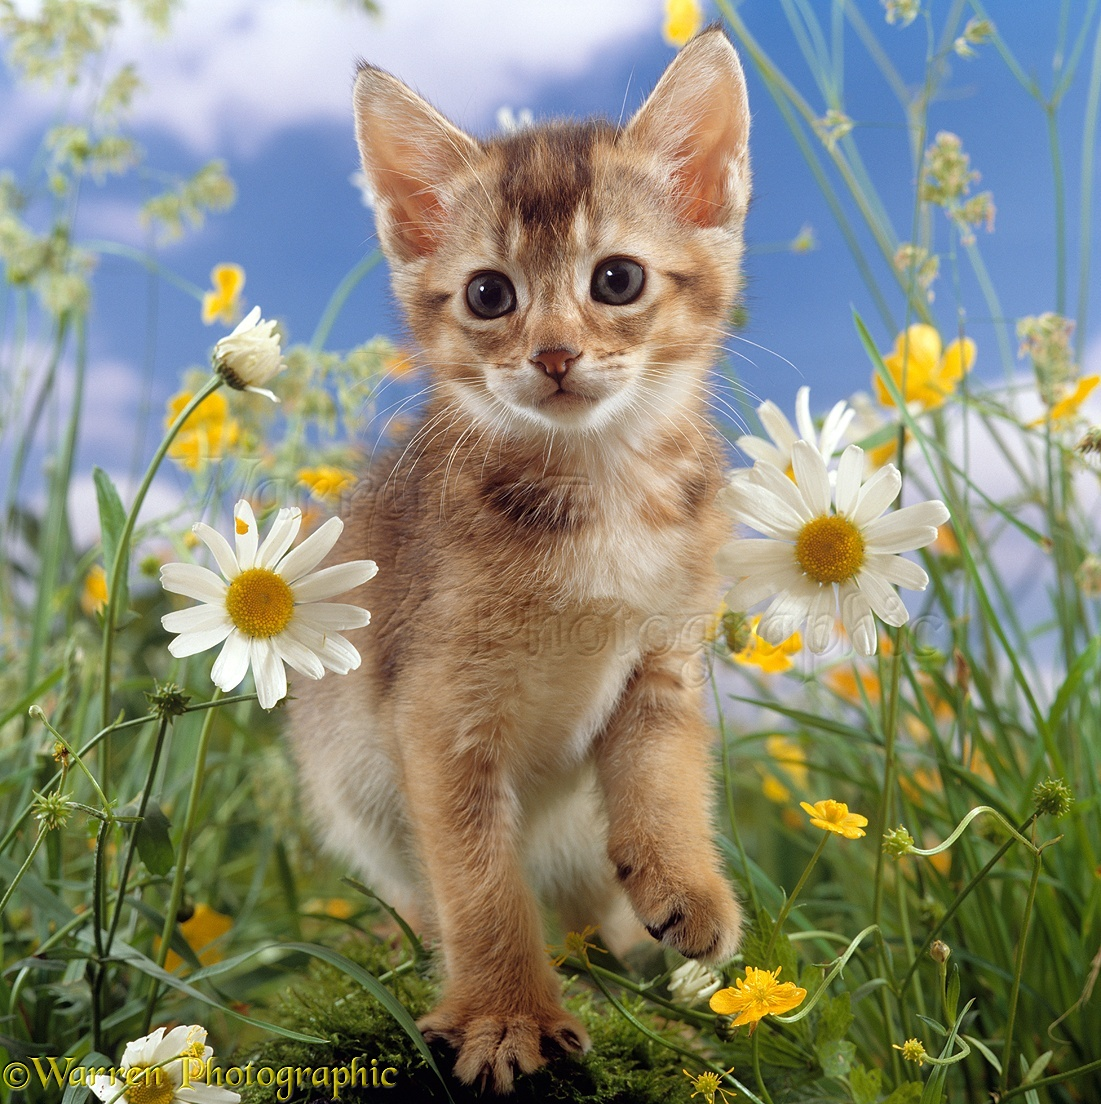 Abyssinian kitten among daisy and buttercup flowers photo wp15887 abyssinian kitten 6 weeks old among ox eye daisies and buttercups izmirmasajfo